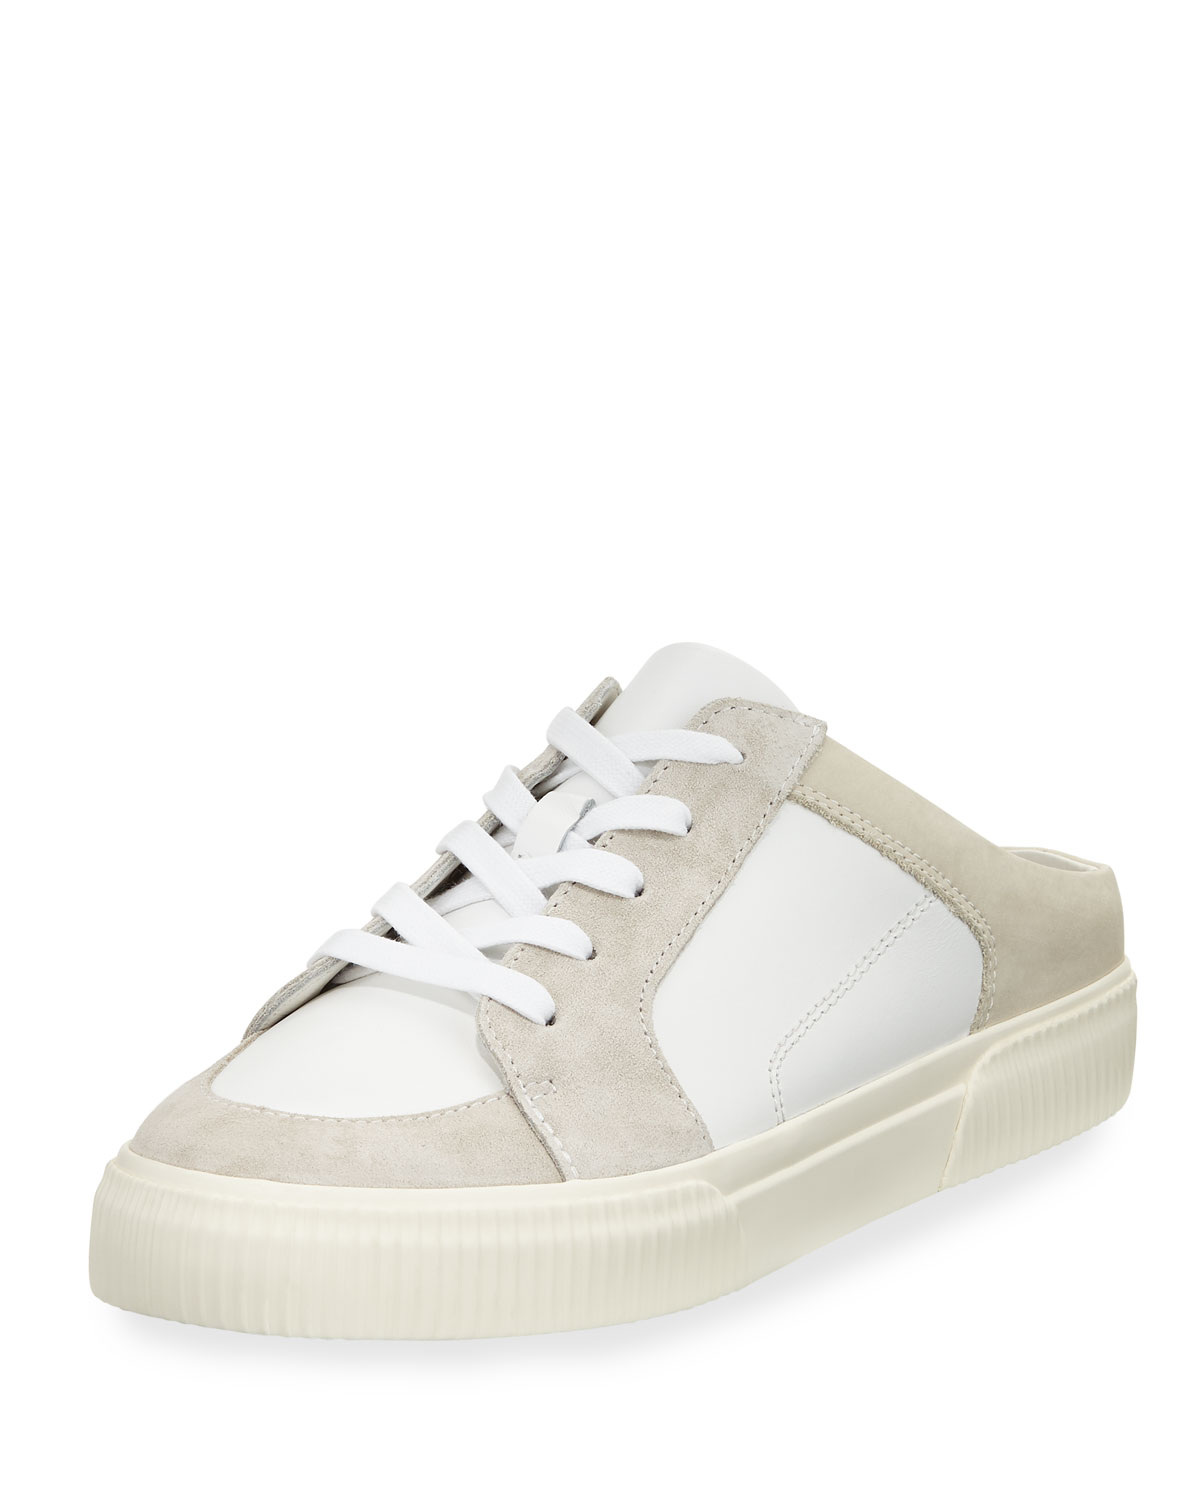 26cd056c4ceb Vince Kess Mixed Leather Mule Sneakers